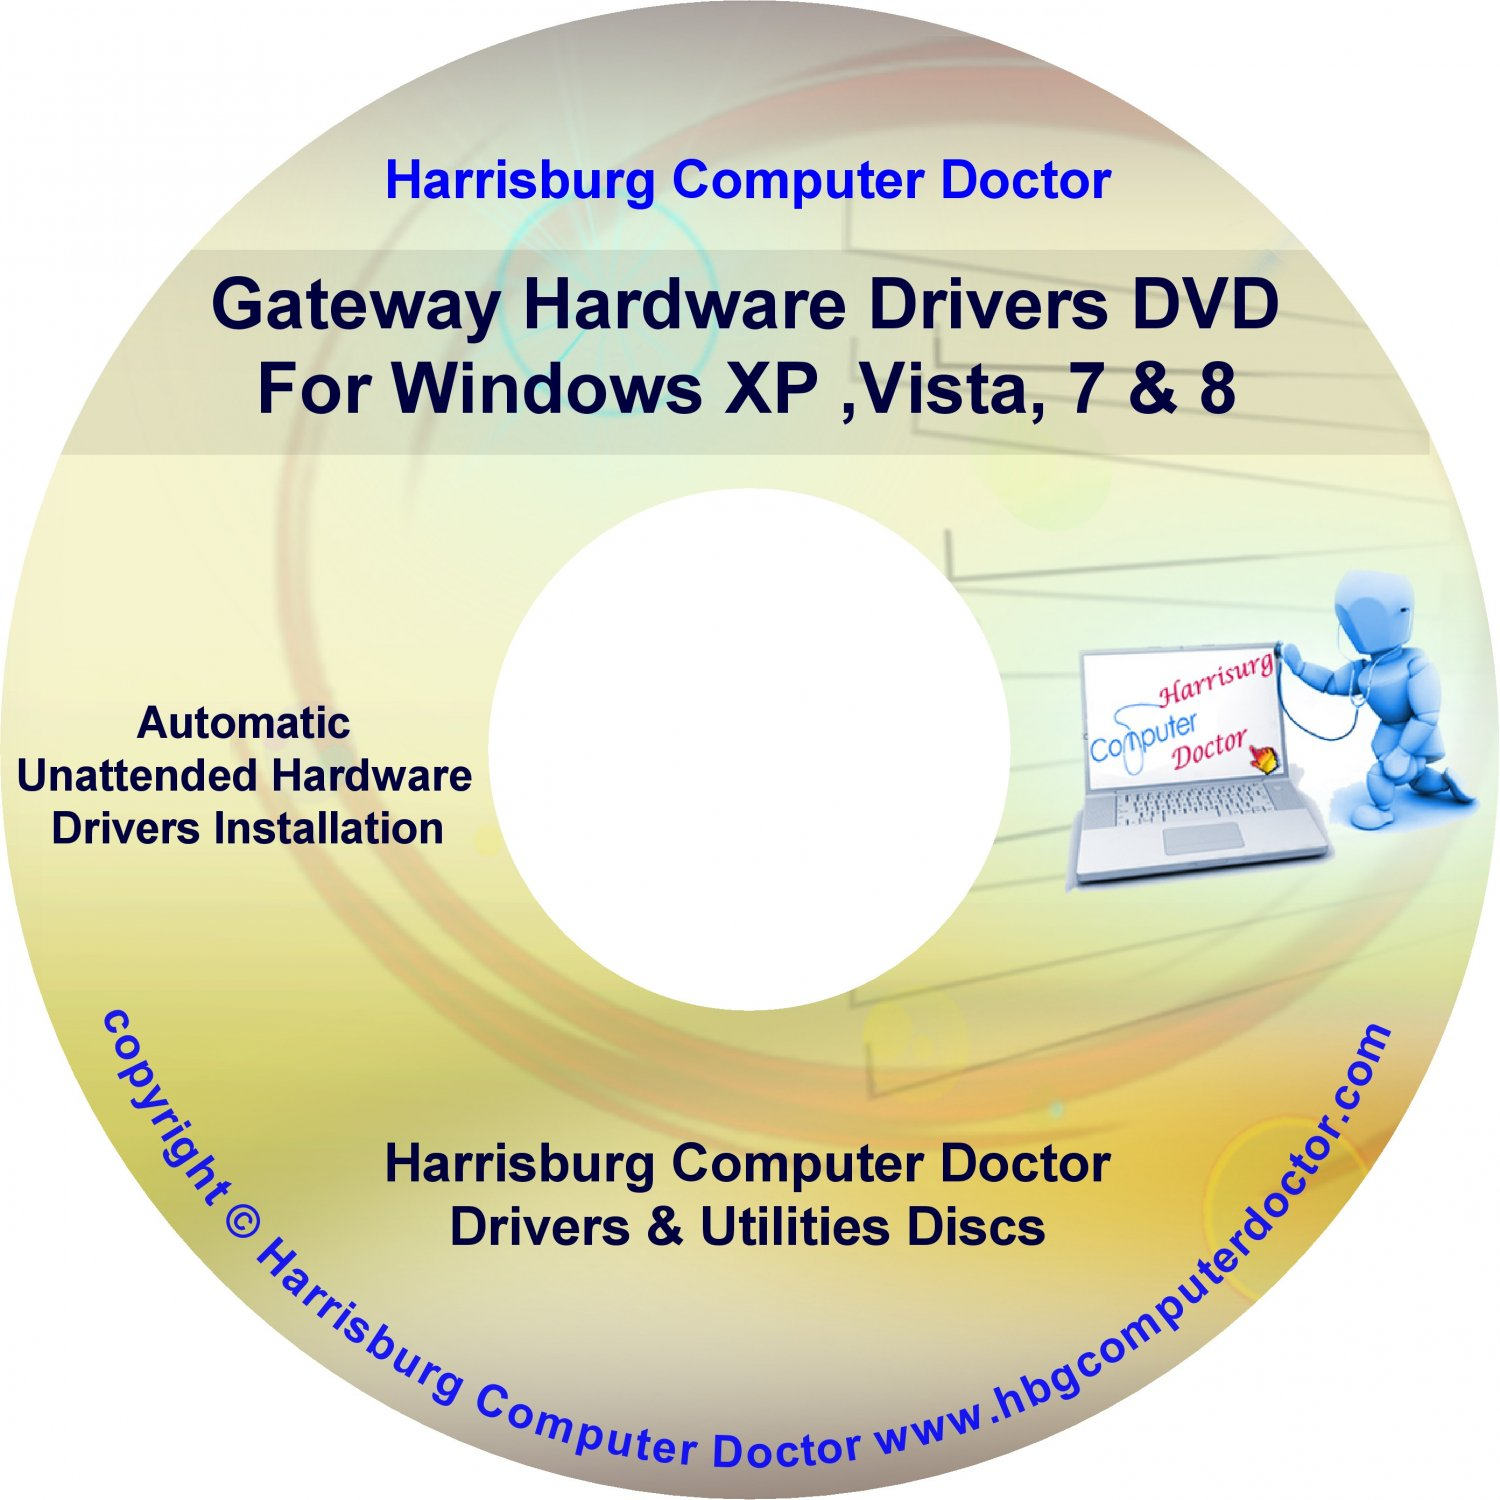 Gateway T-6816h Drivers DVD For Windows, XP, Vista, 7 & 8